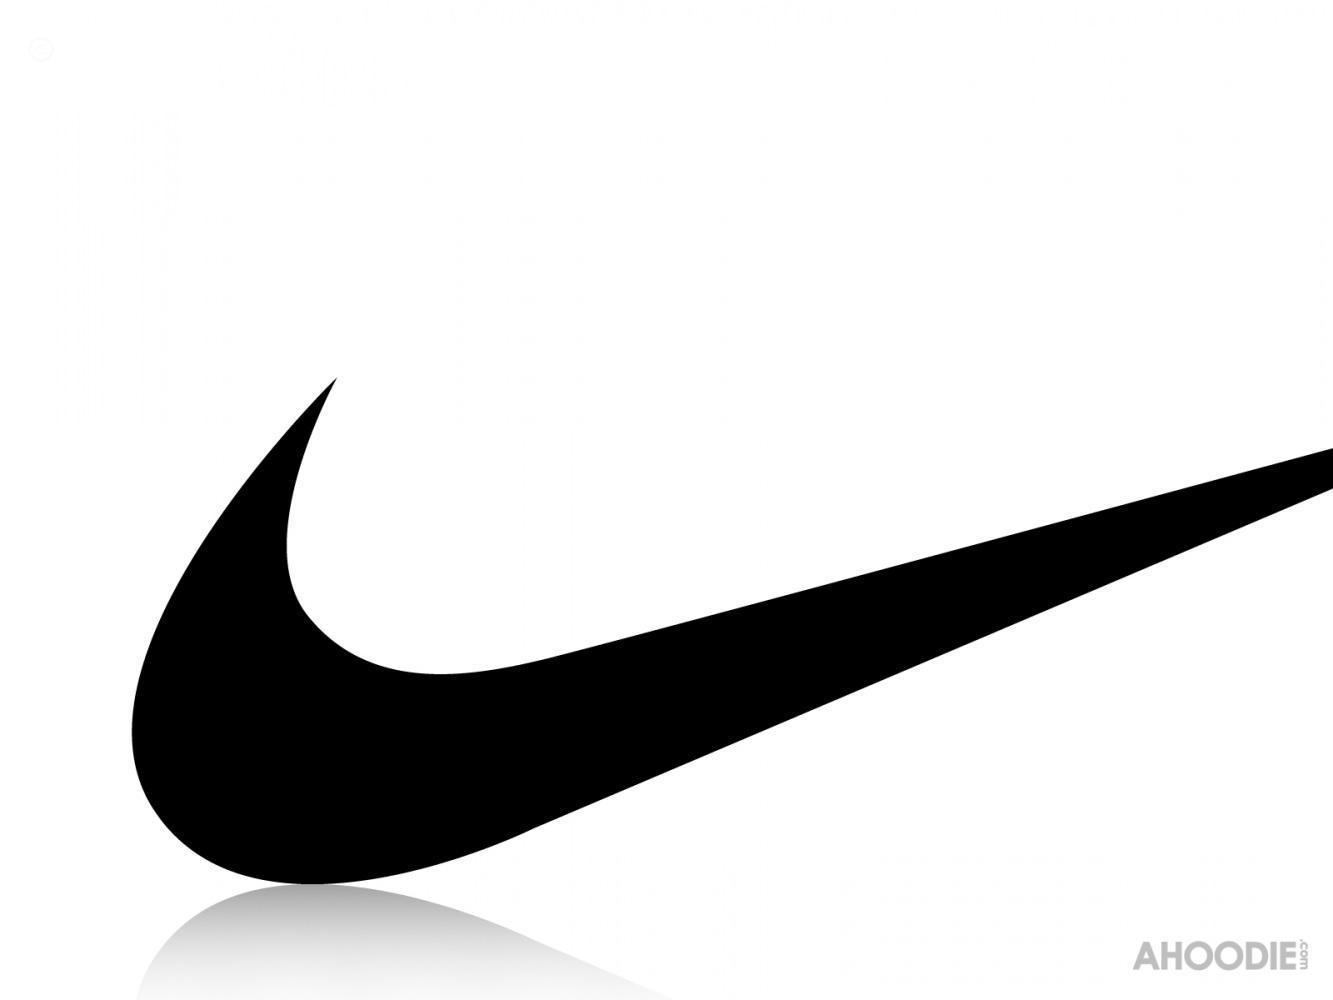 Nike Swoosh Wallpapers Top Free Nike Swoosh Backgrounds Wallpaperaccess